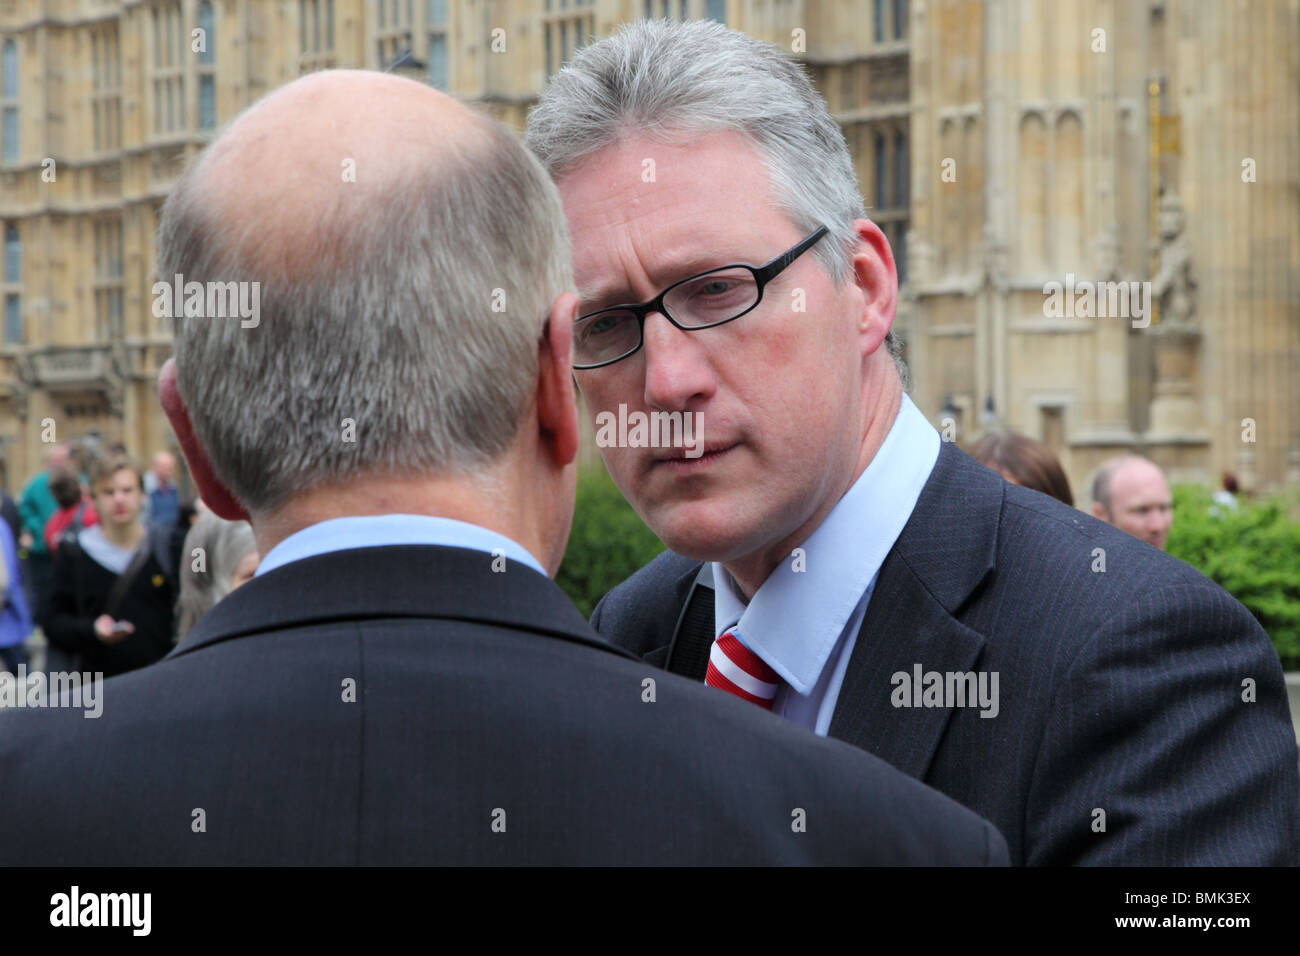 Ex-Liberal Democrat MP Lembit Opik on College Green, Westminster, London. - Stock Image